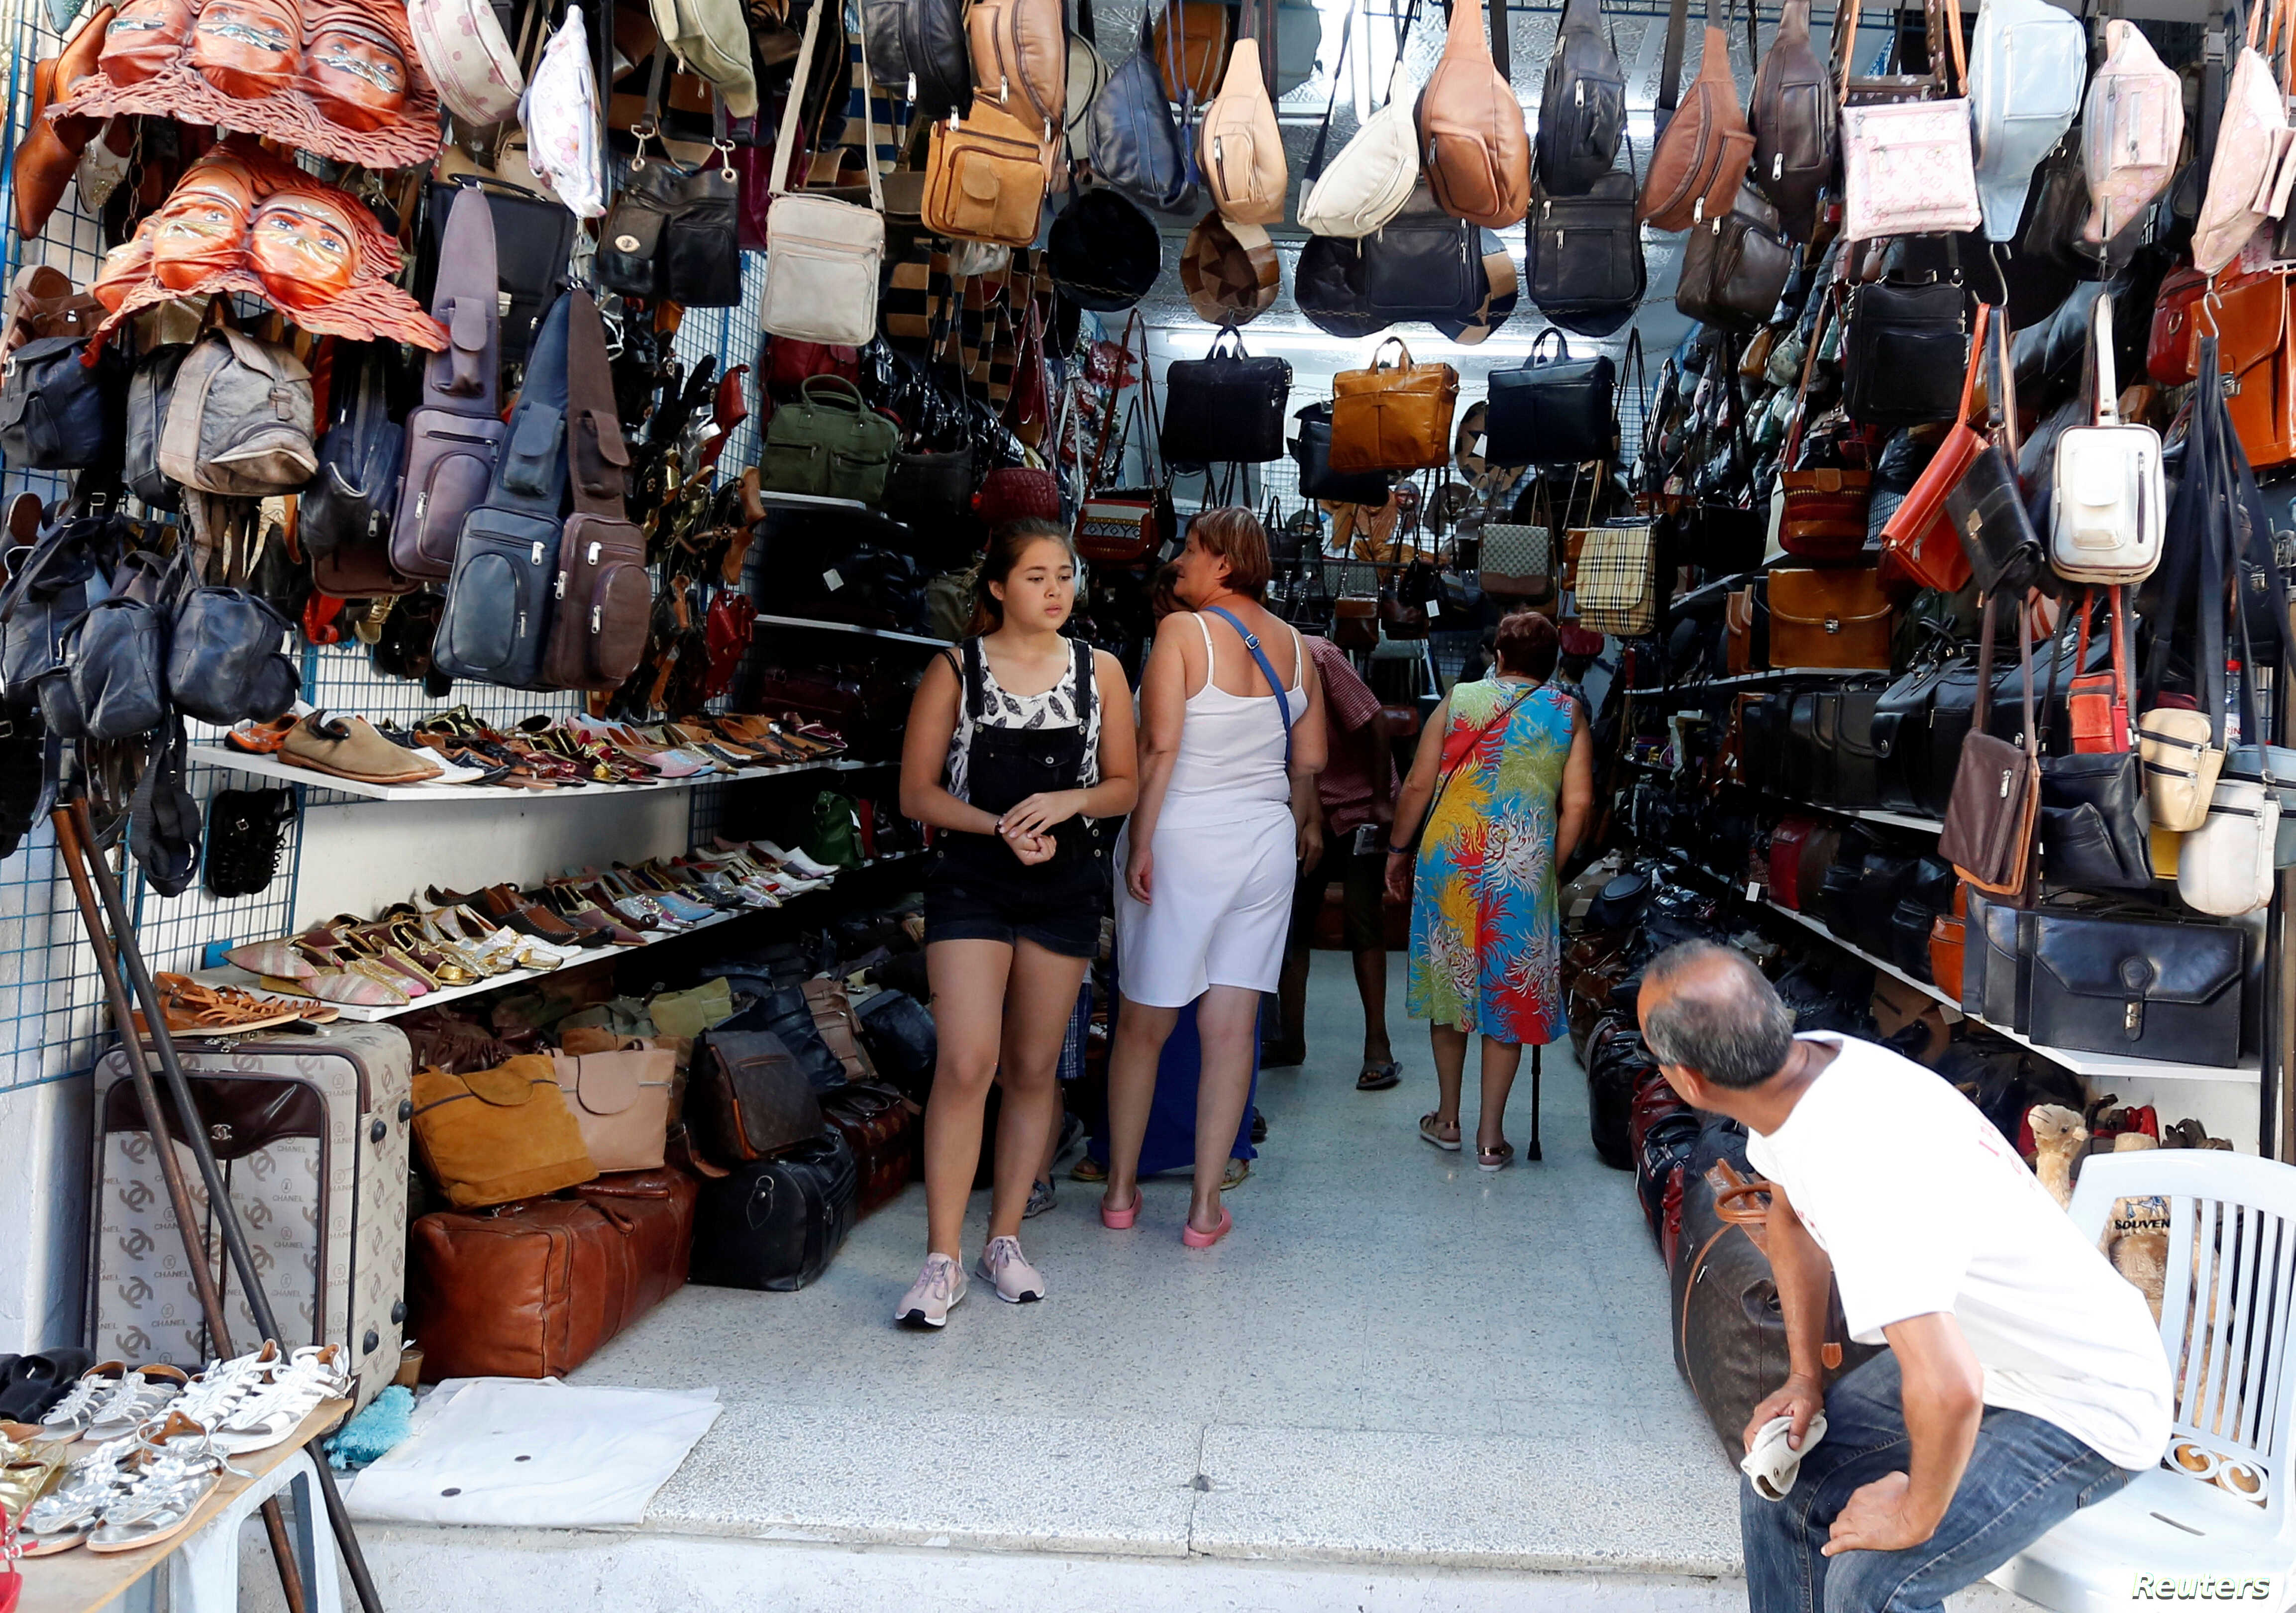 Russian tourists shop at the old medina in Sousse, Tunisia, Sept. 30, 2017.